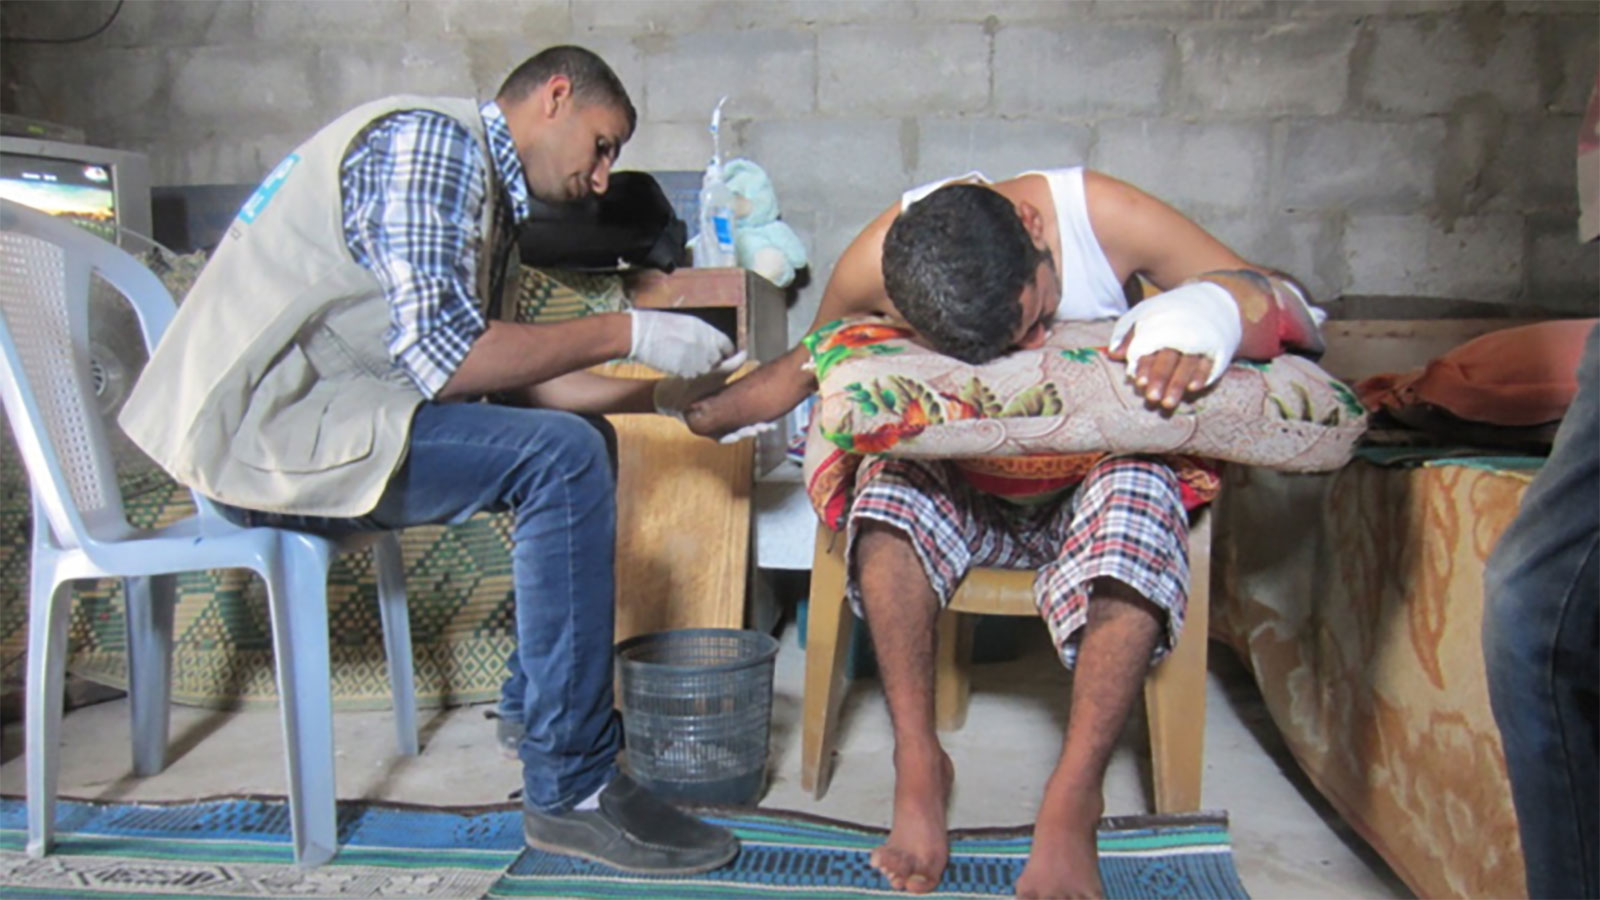 Gaza emergency | HI launches emergency response in aid of injured